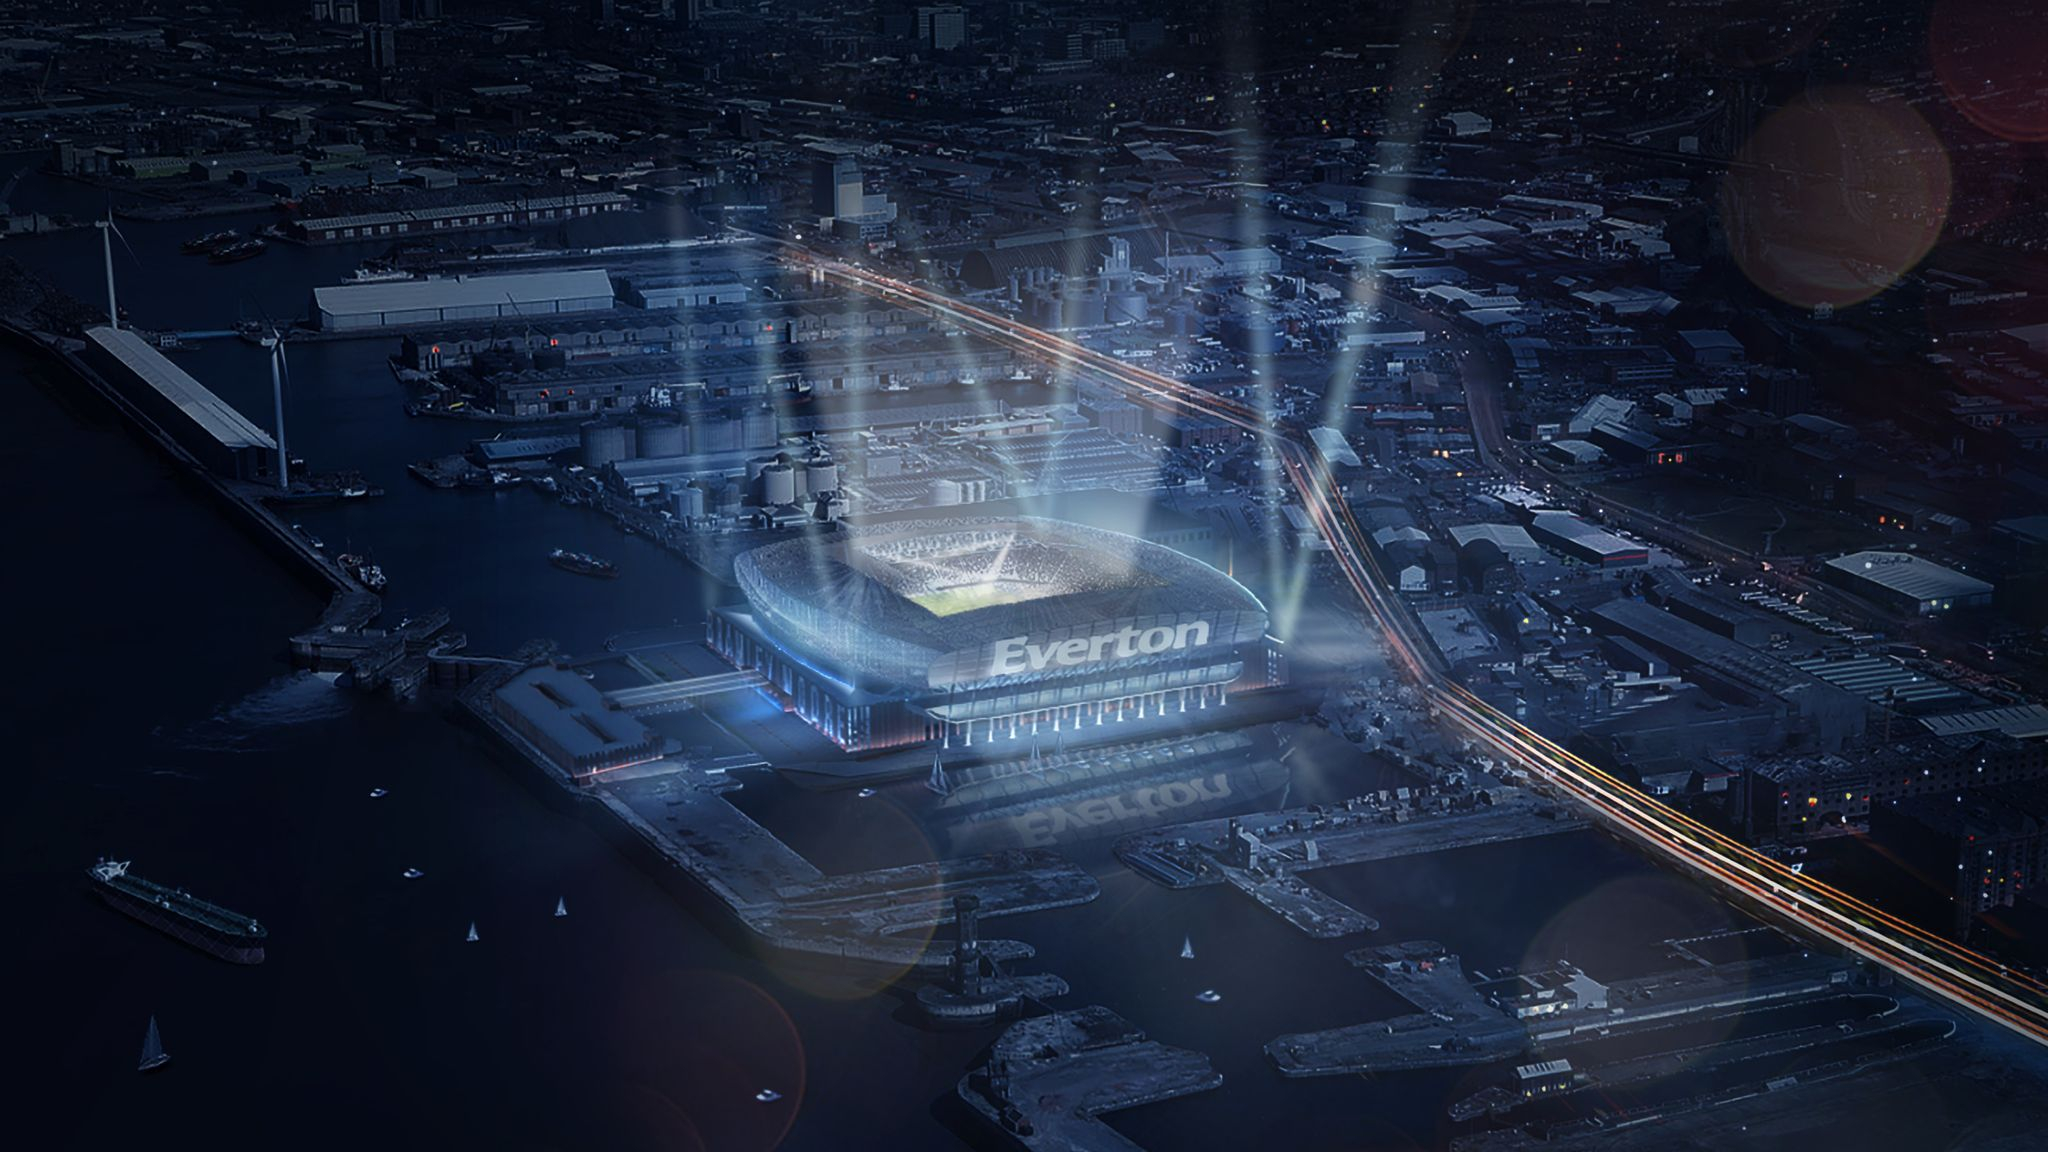 Everton set for new stadium planning submission for Bramley-Moore Dock ground